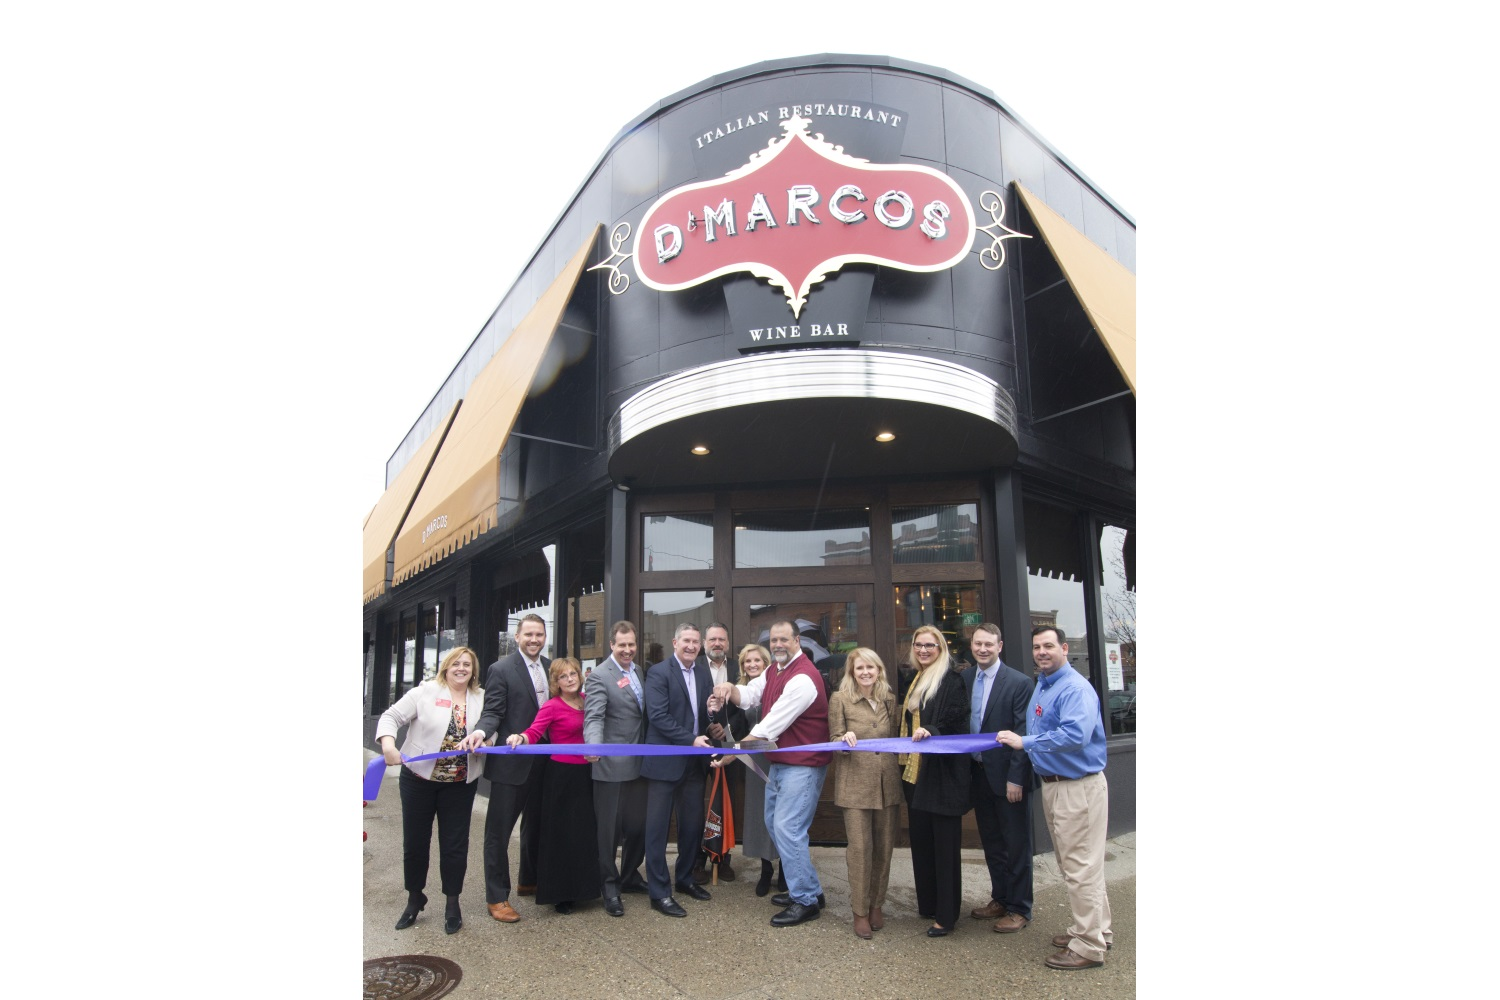 D'Marcos Italian Restaurant and Wine Bar Ribbon Cutting